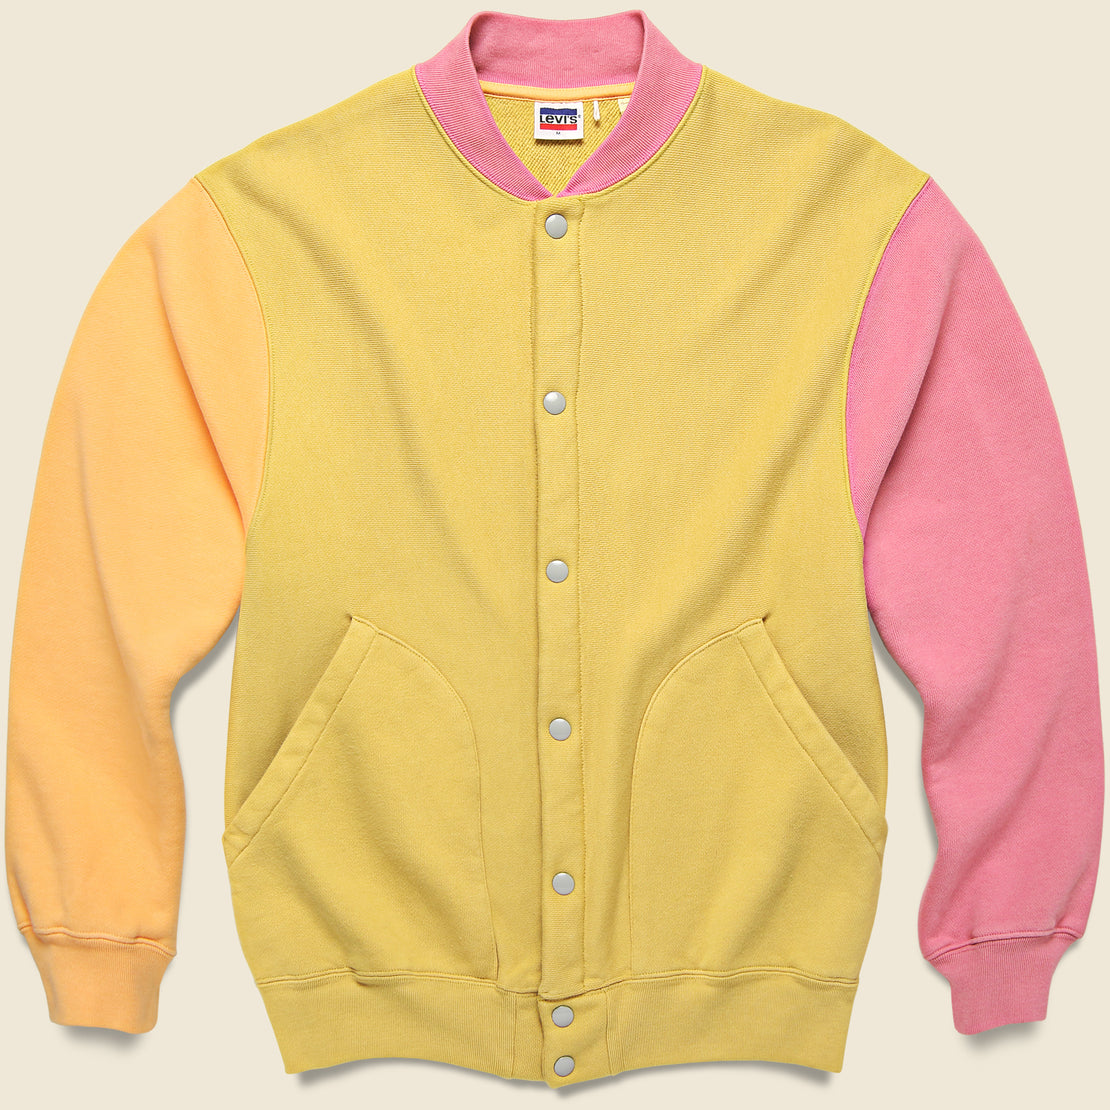 Levis Vintage Clothing Fleece Cardigan - Lemon/Orange/Pink/Tan